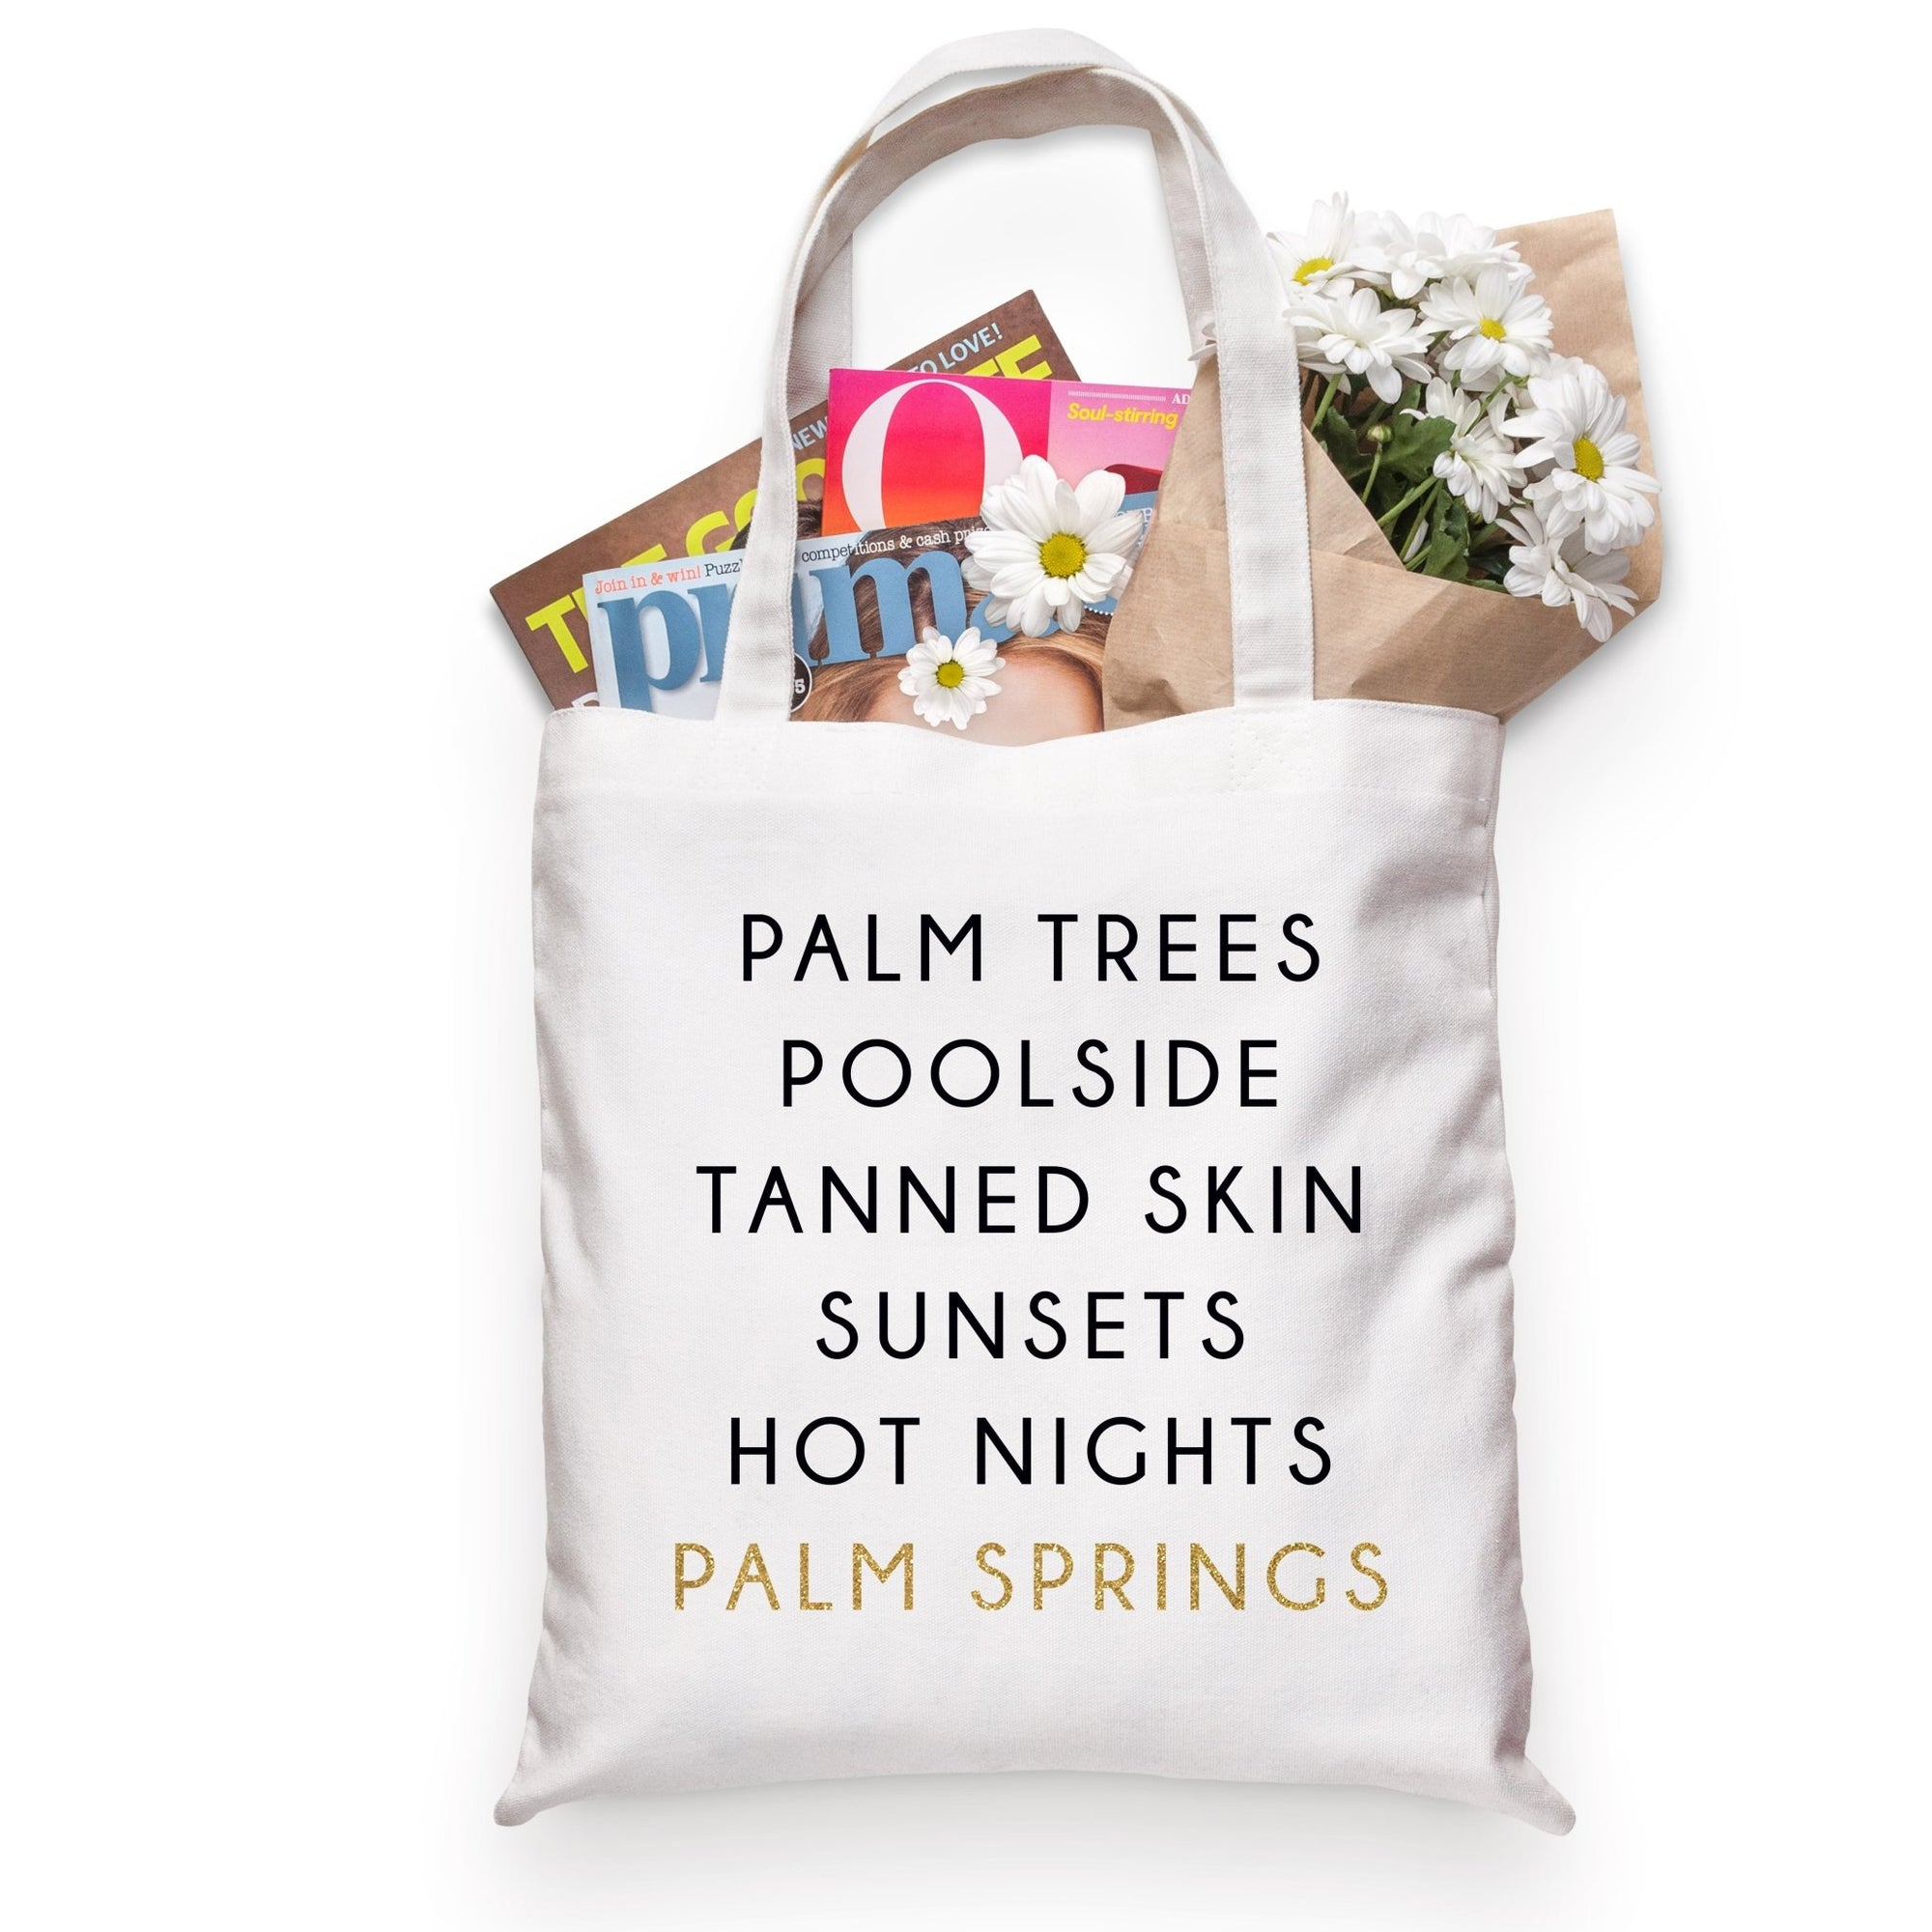 Palm Springs City Tote - Sprinkled With Pink #bachelorette #custom #gifts